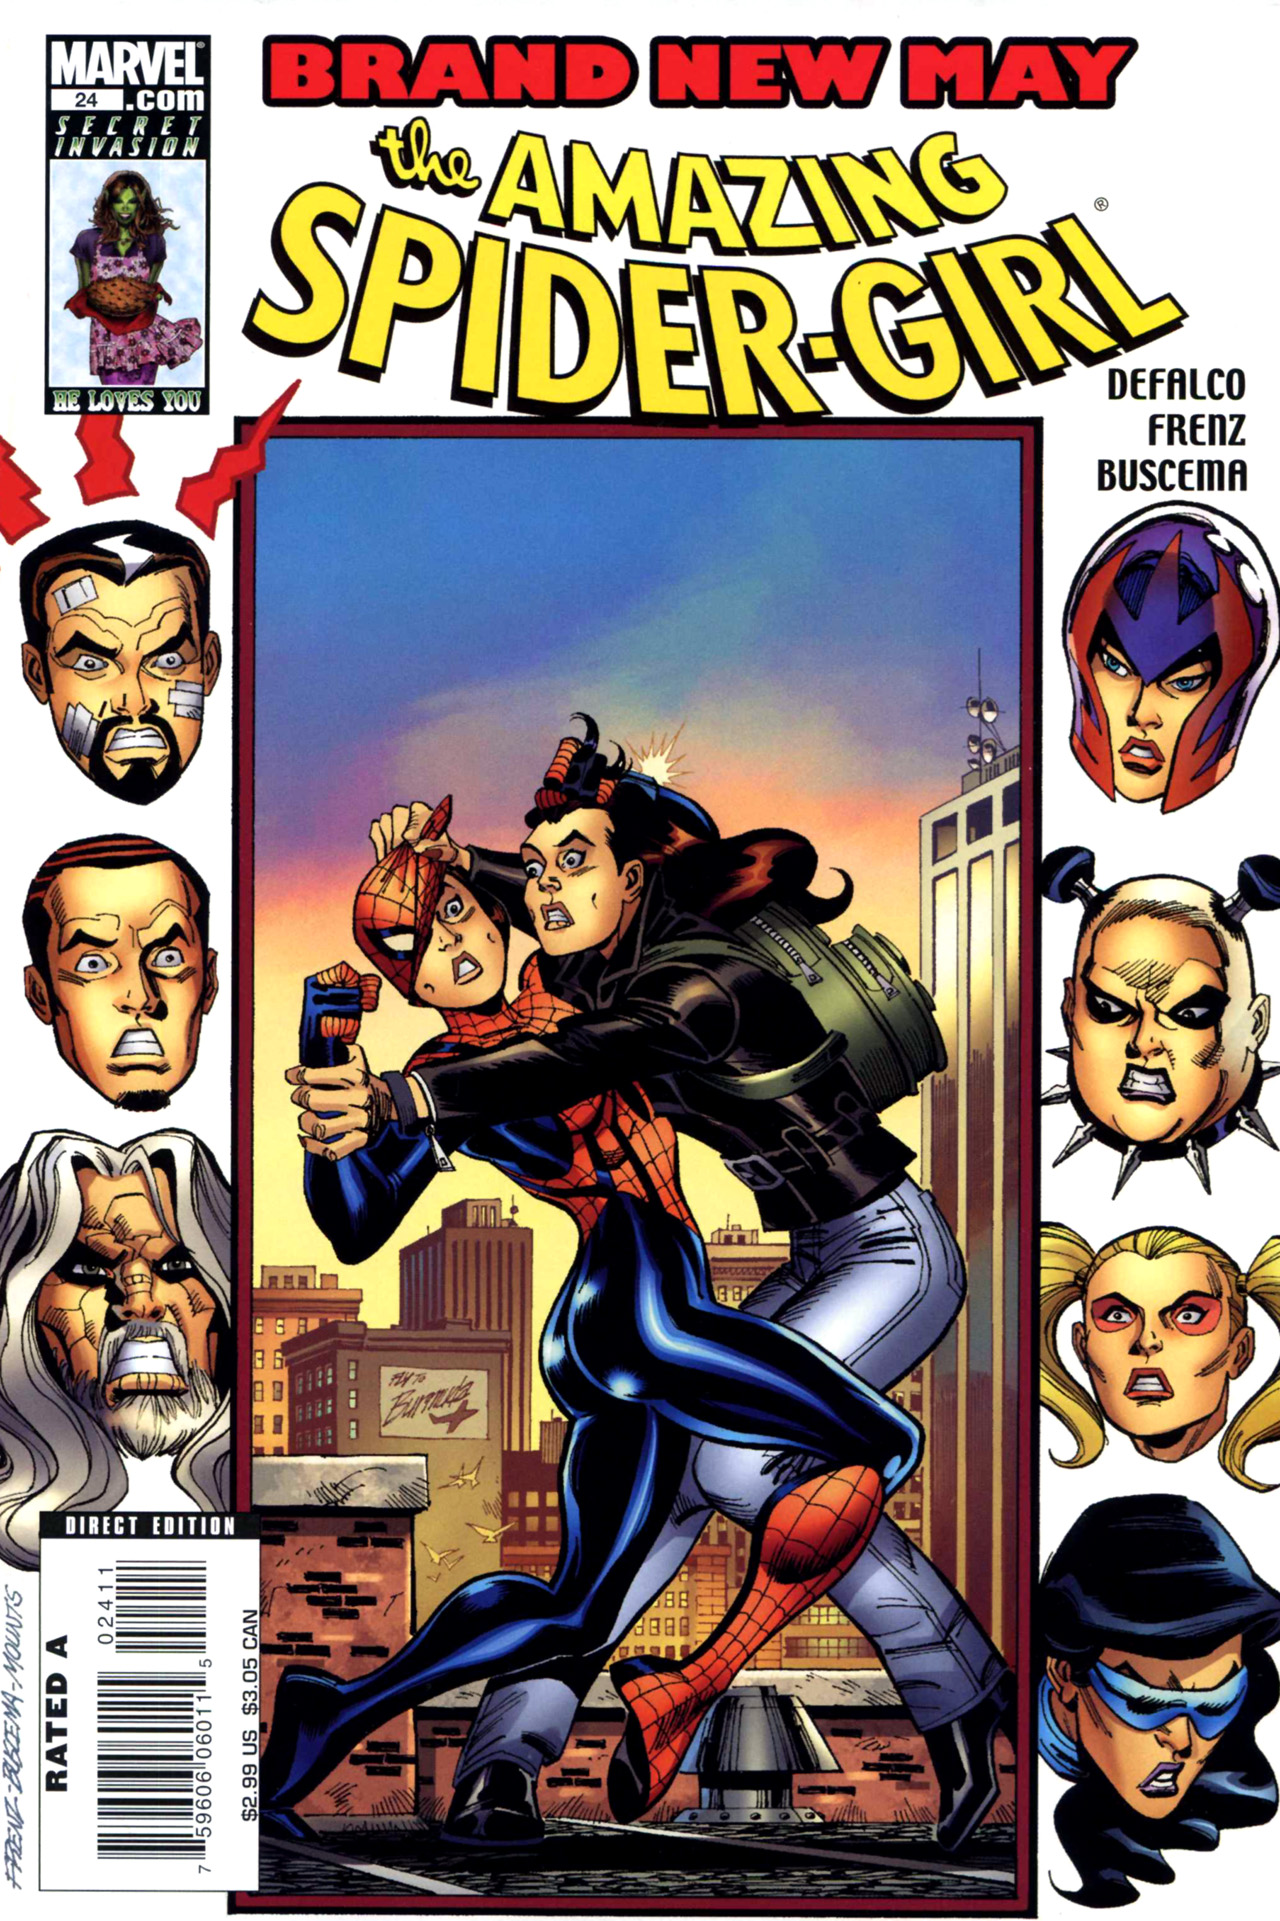 Read online Amazing Spider-Girl comic -  Issue #24 - 1